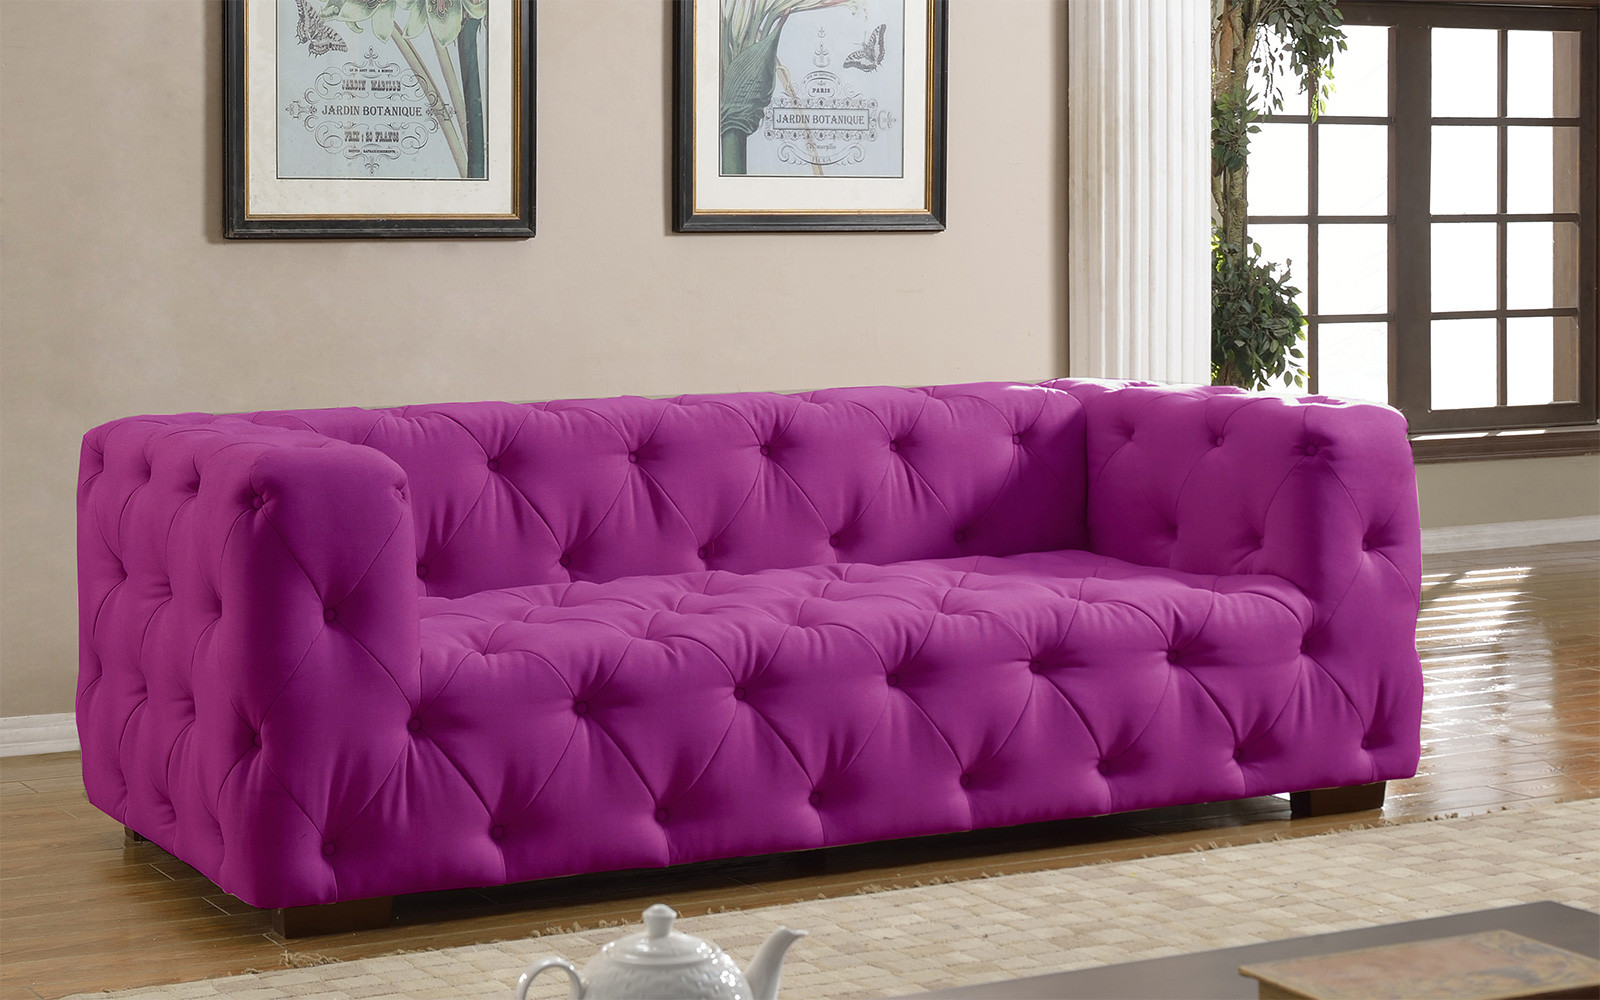 Luxurious Modern Large Tufted Linen Fabric Sofa   Walmart.com